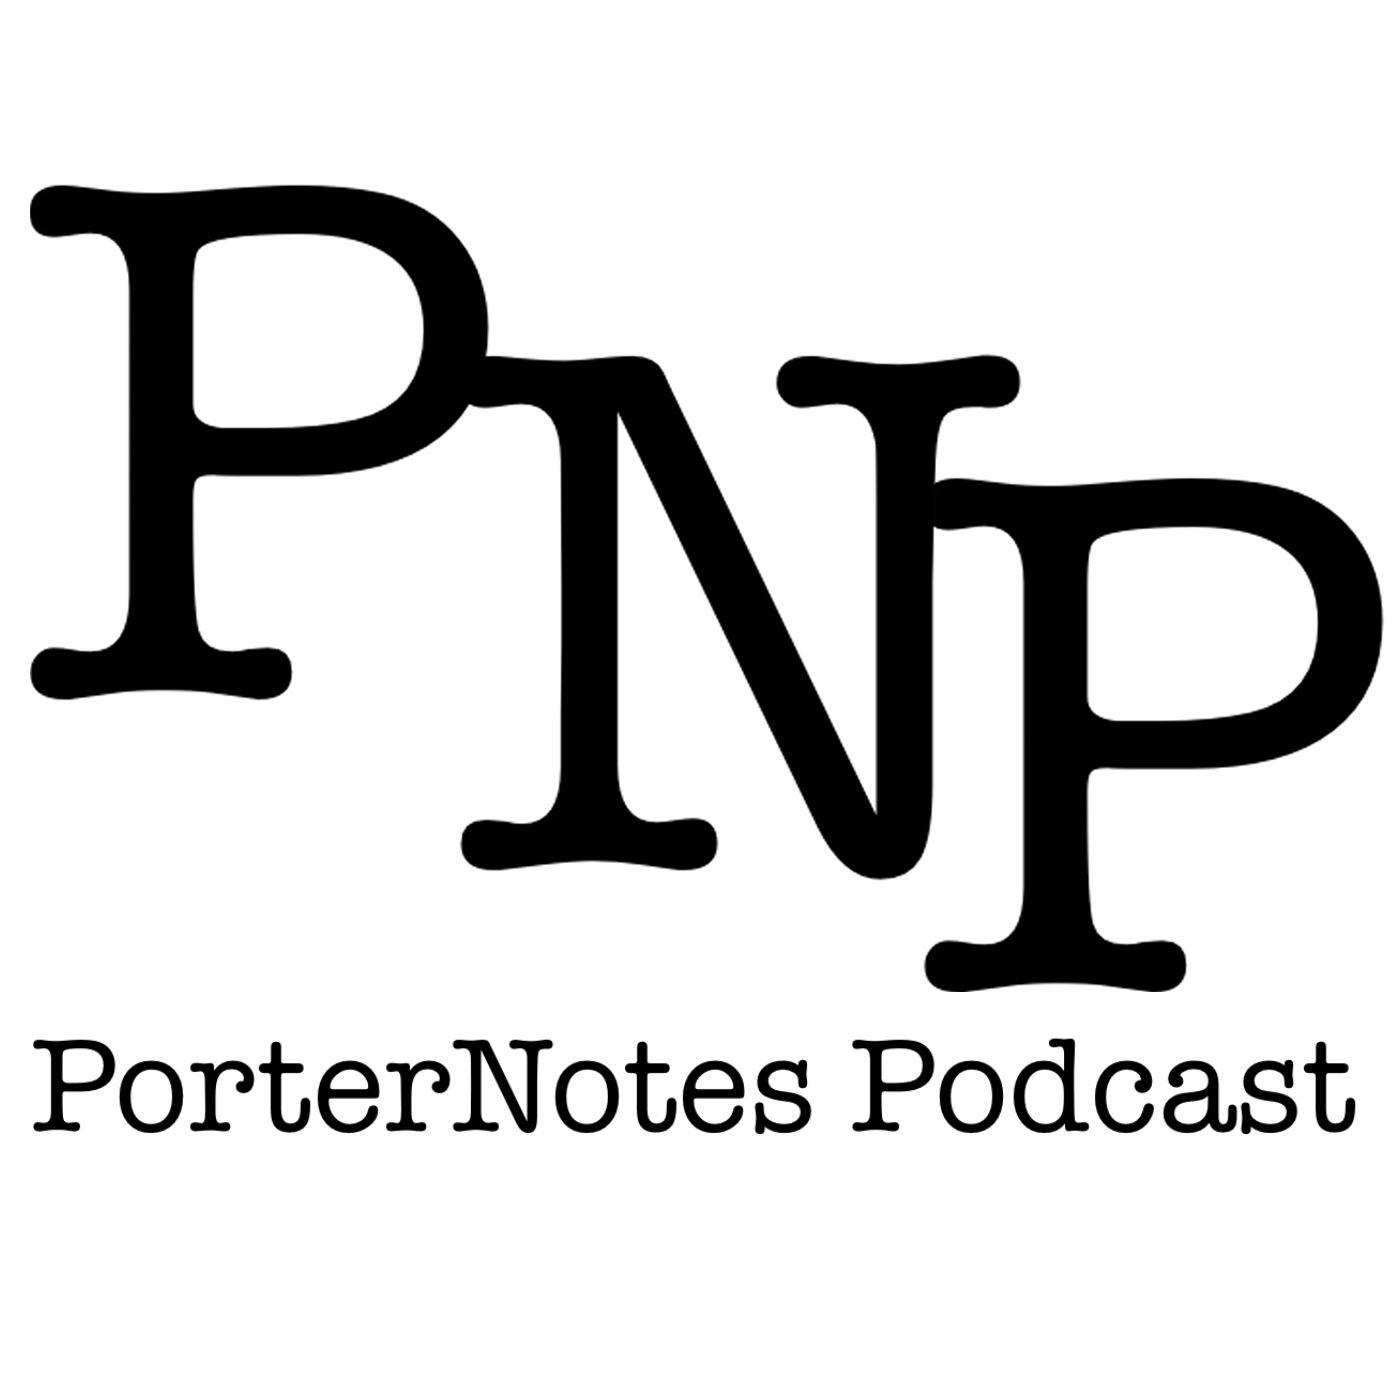 The PorterNotes Podcast